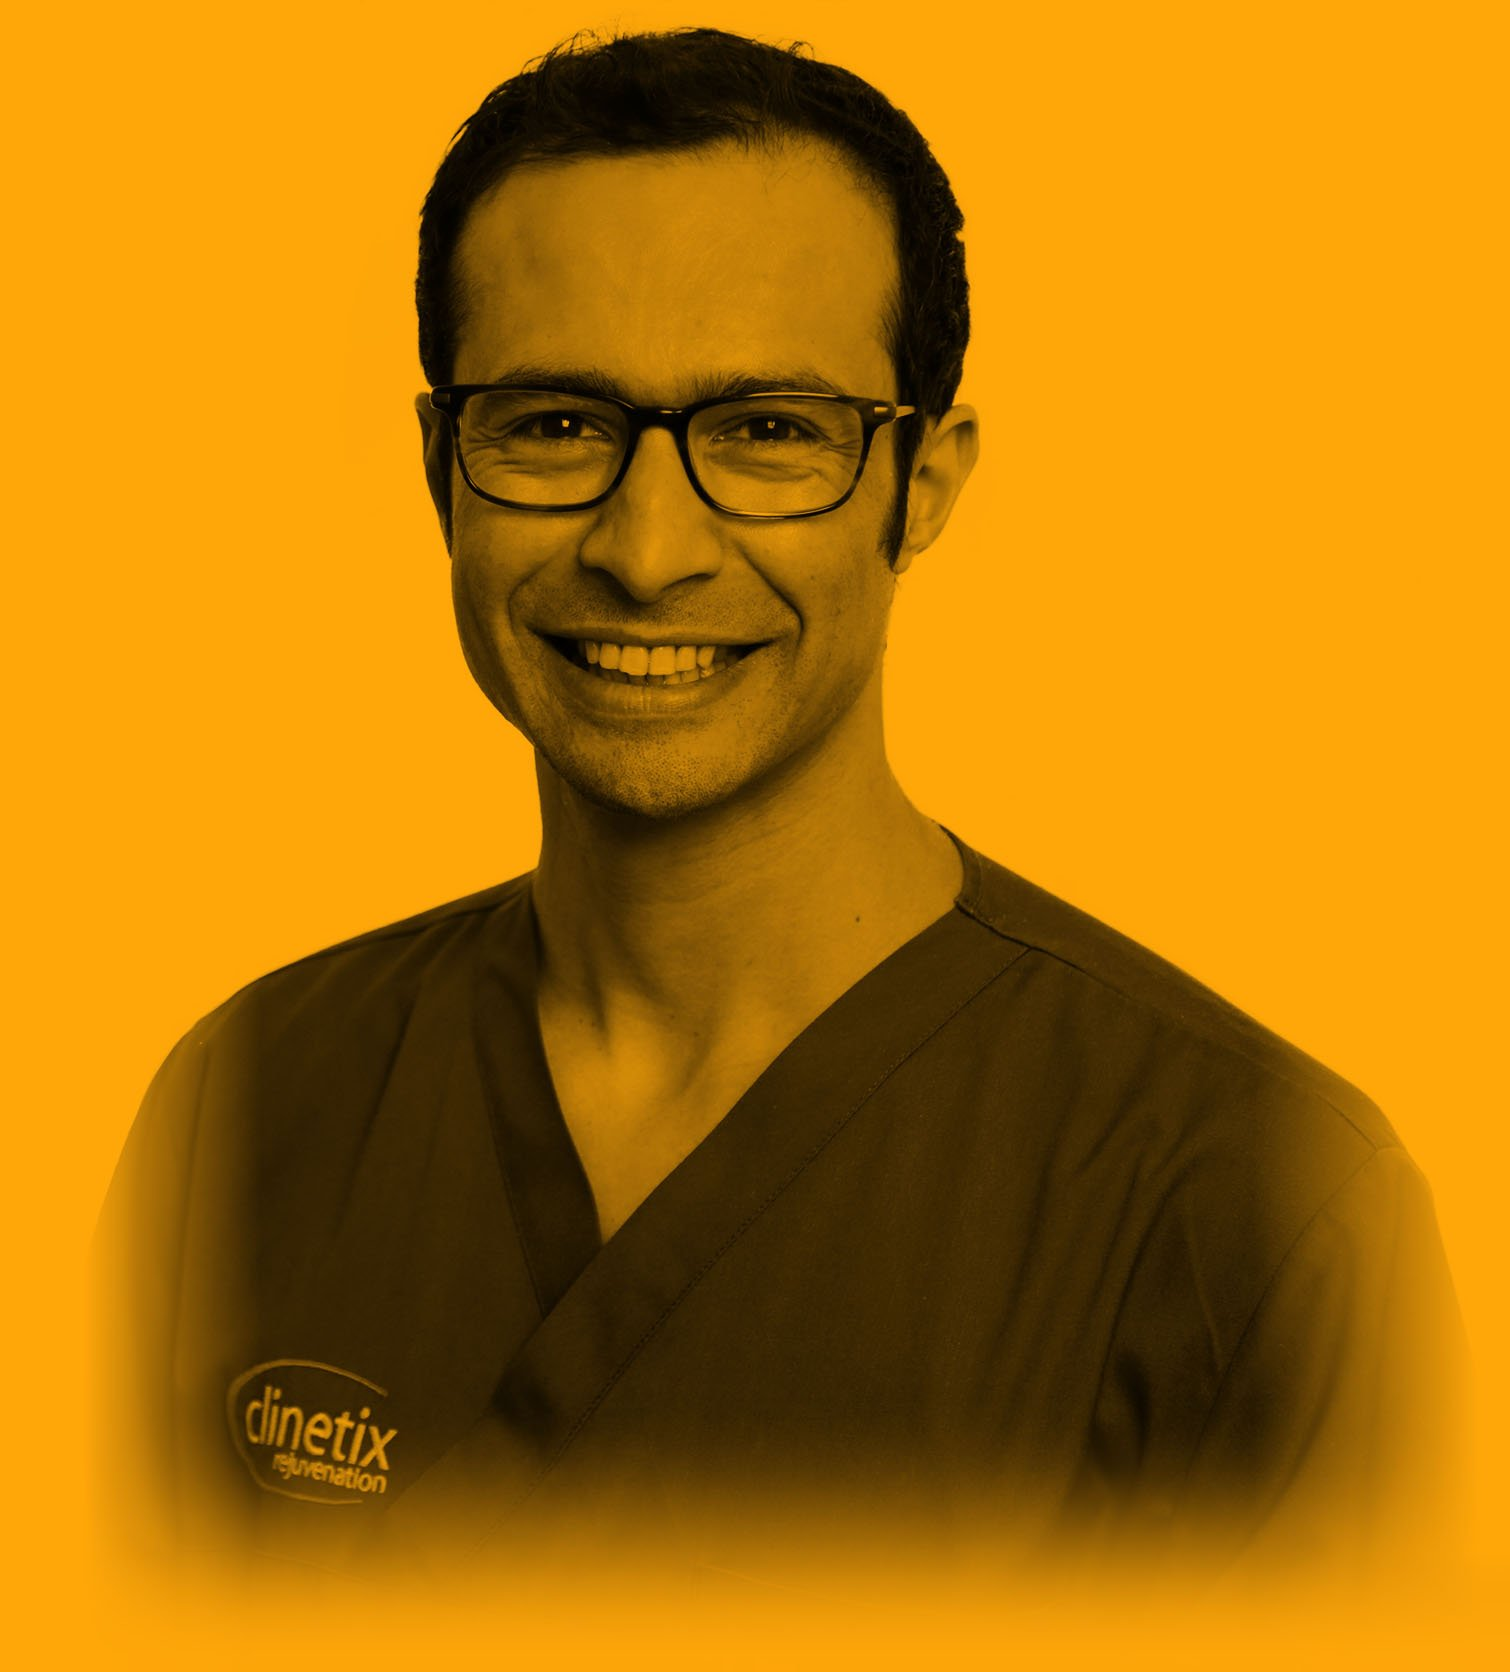 Clinetix Director Dr Simon Ravichandran